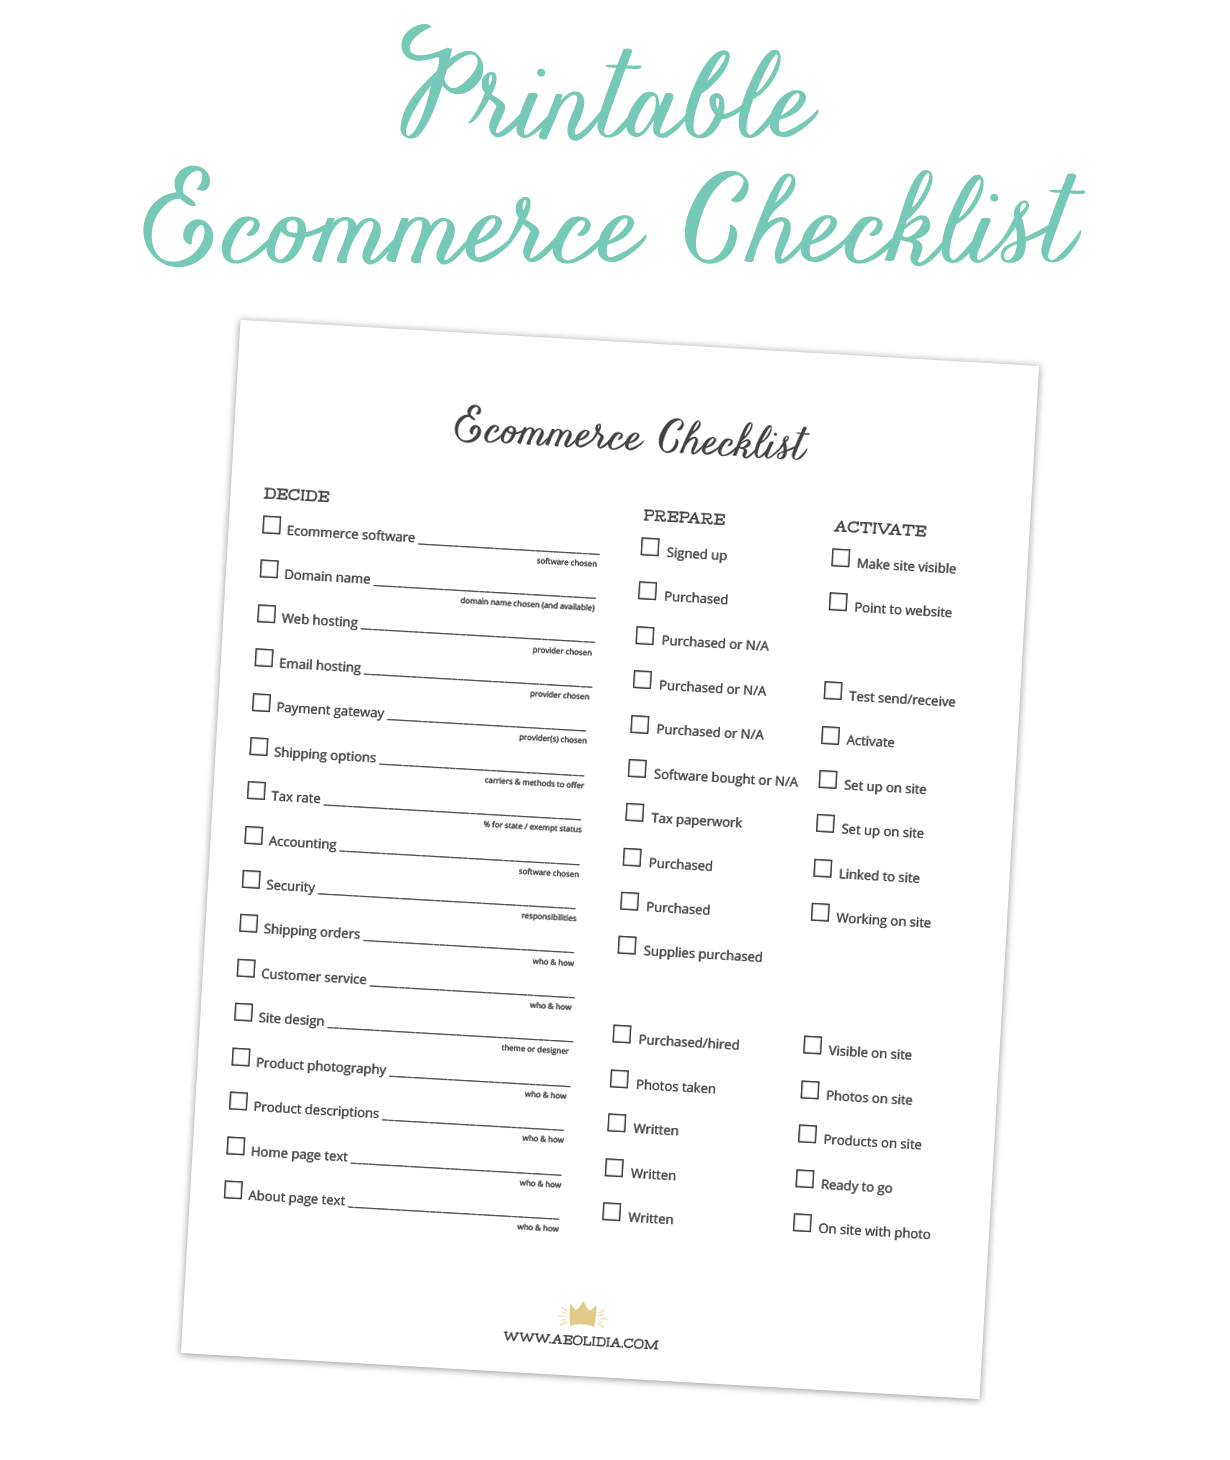 Printable Setup Checklist Small business